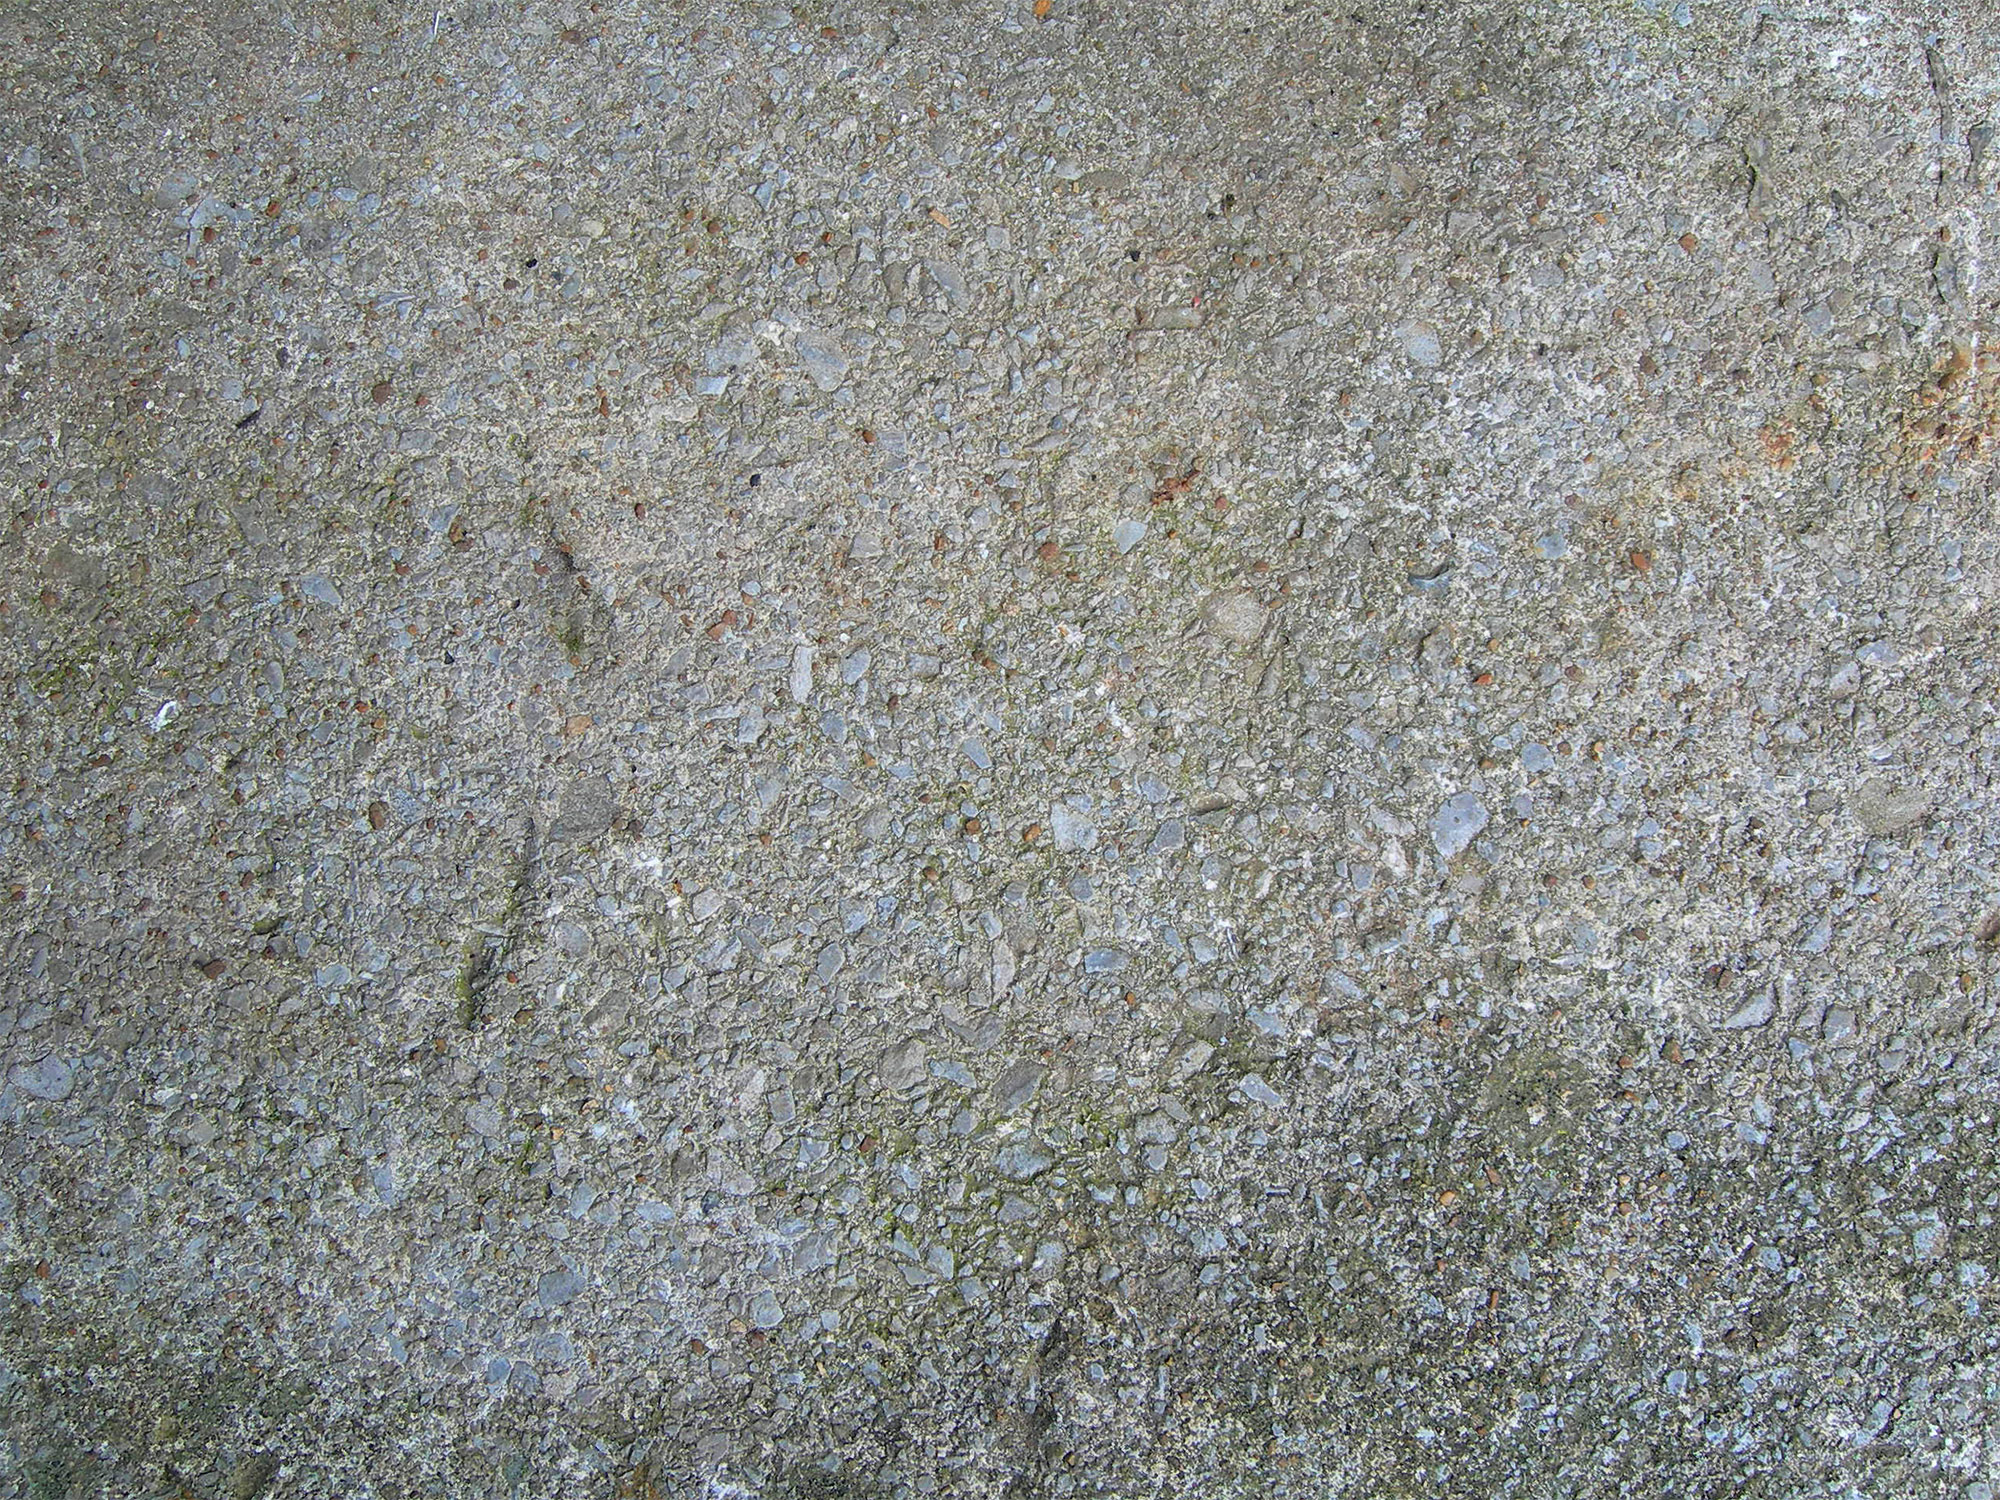 Weathered stone texture photo